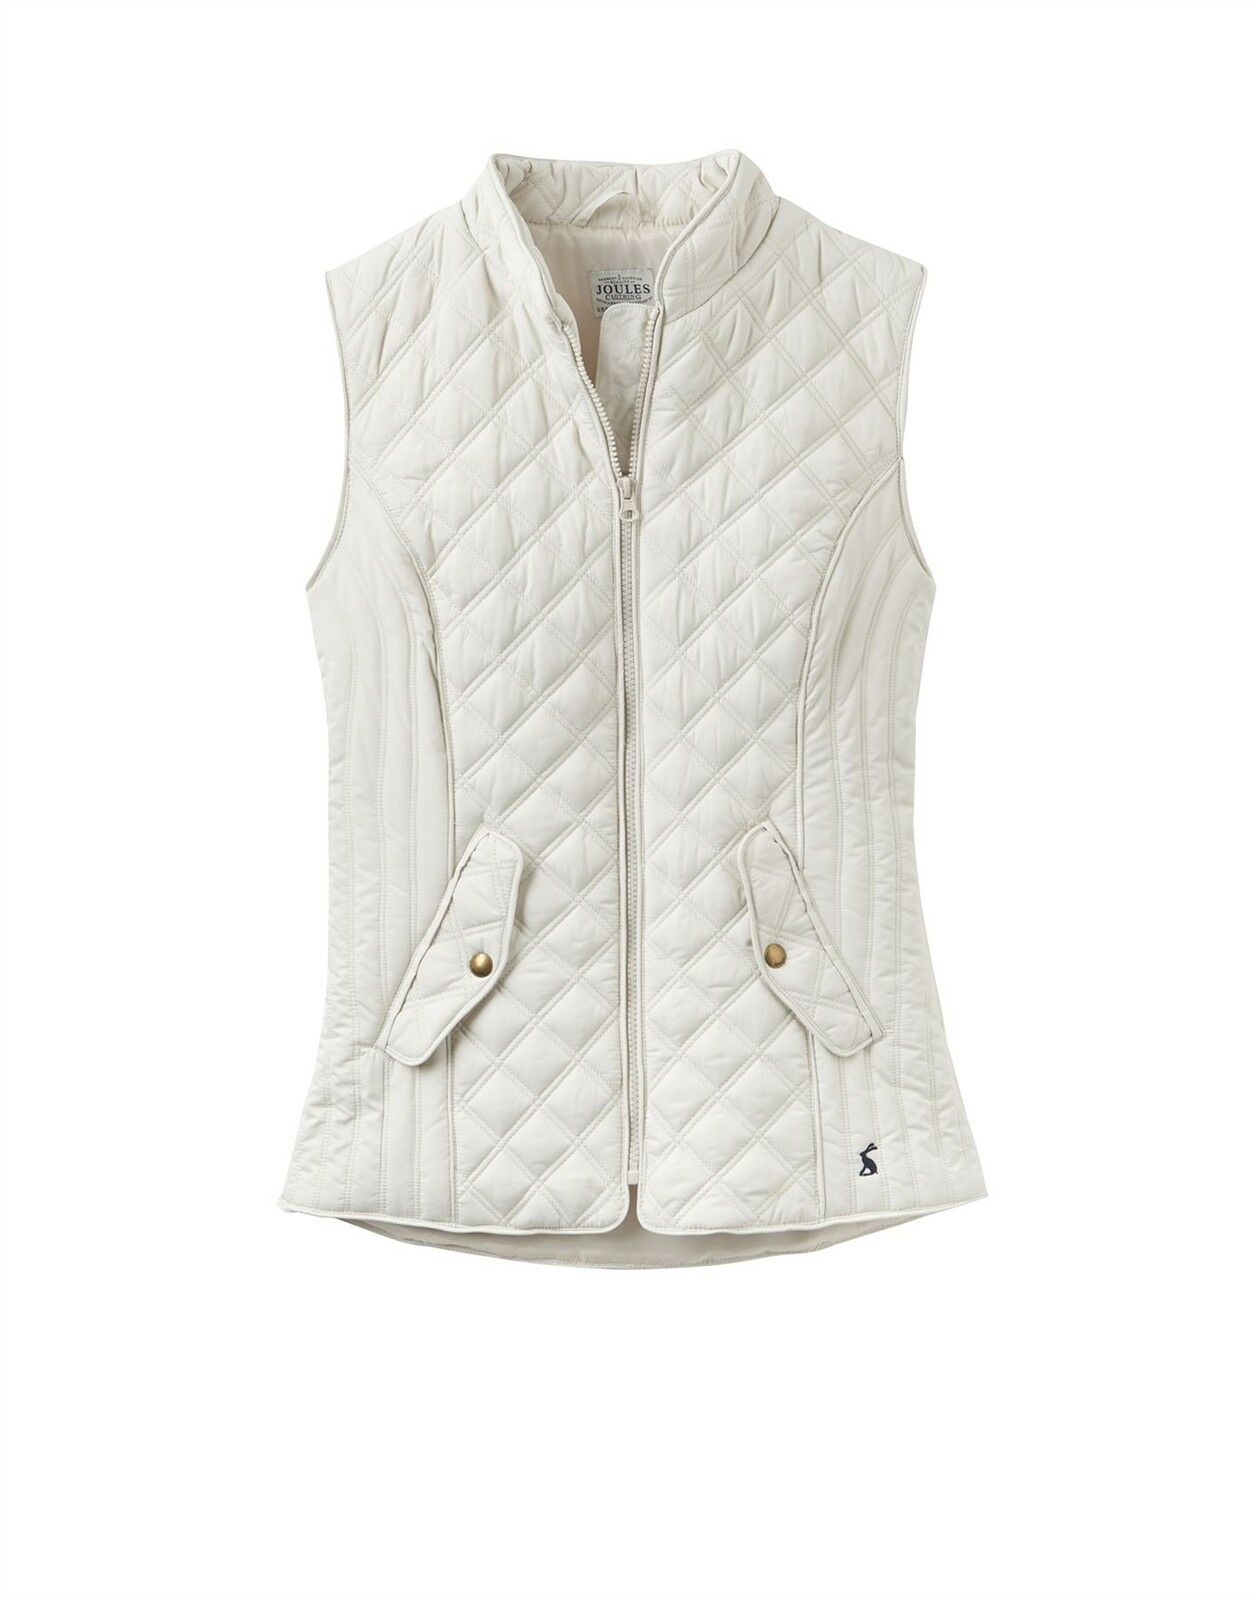 Joules Minx Ladies Equestrian Winter Fitted Warm Horse Riding Quilted Gilet